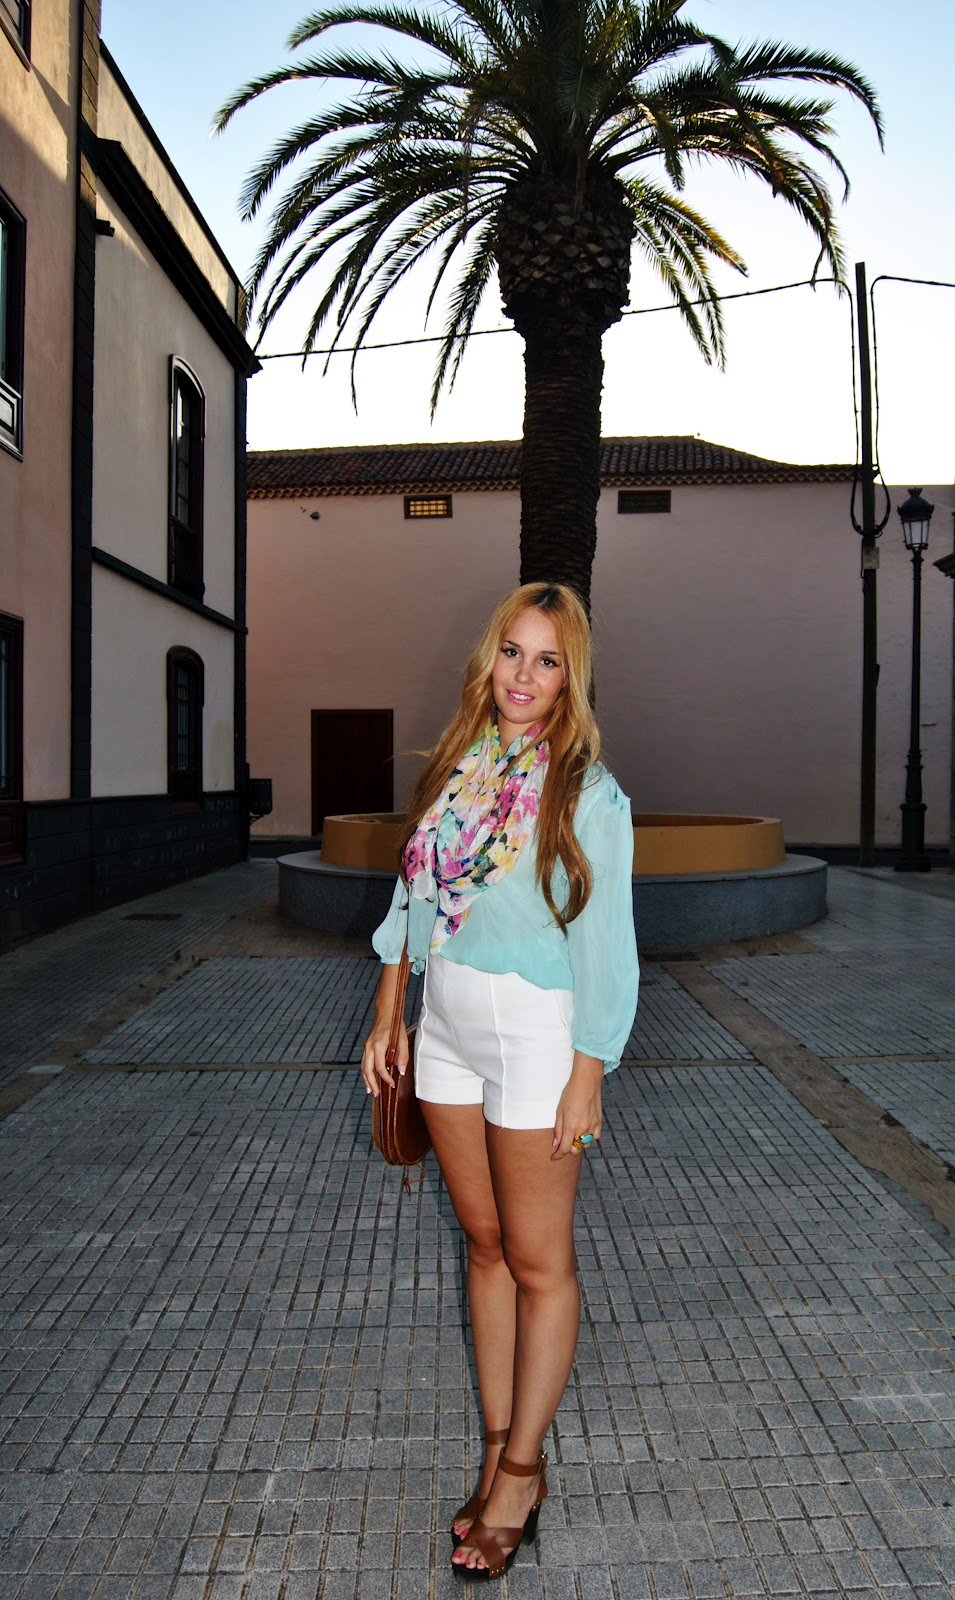 nery hdez, ysl , white shorts, scarf, look con pañuelo